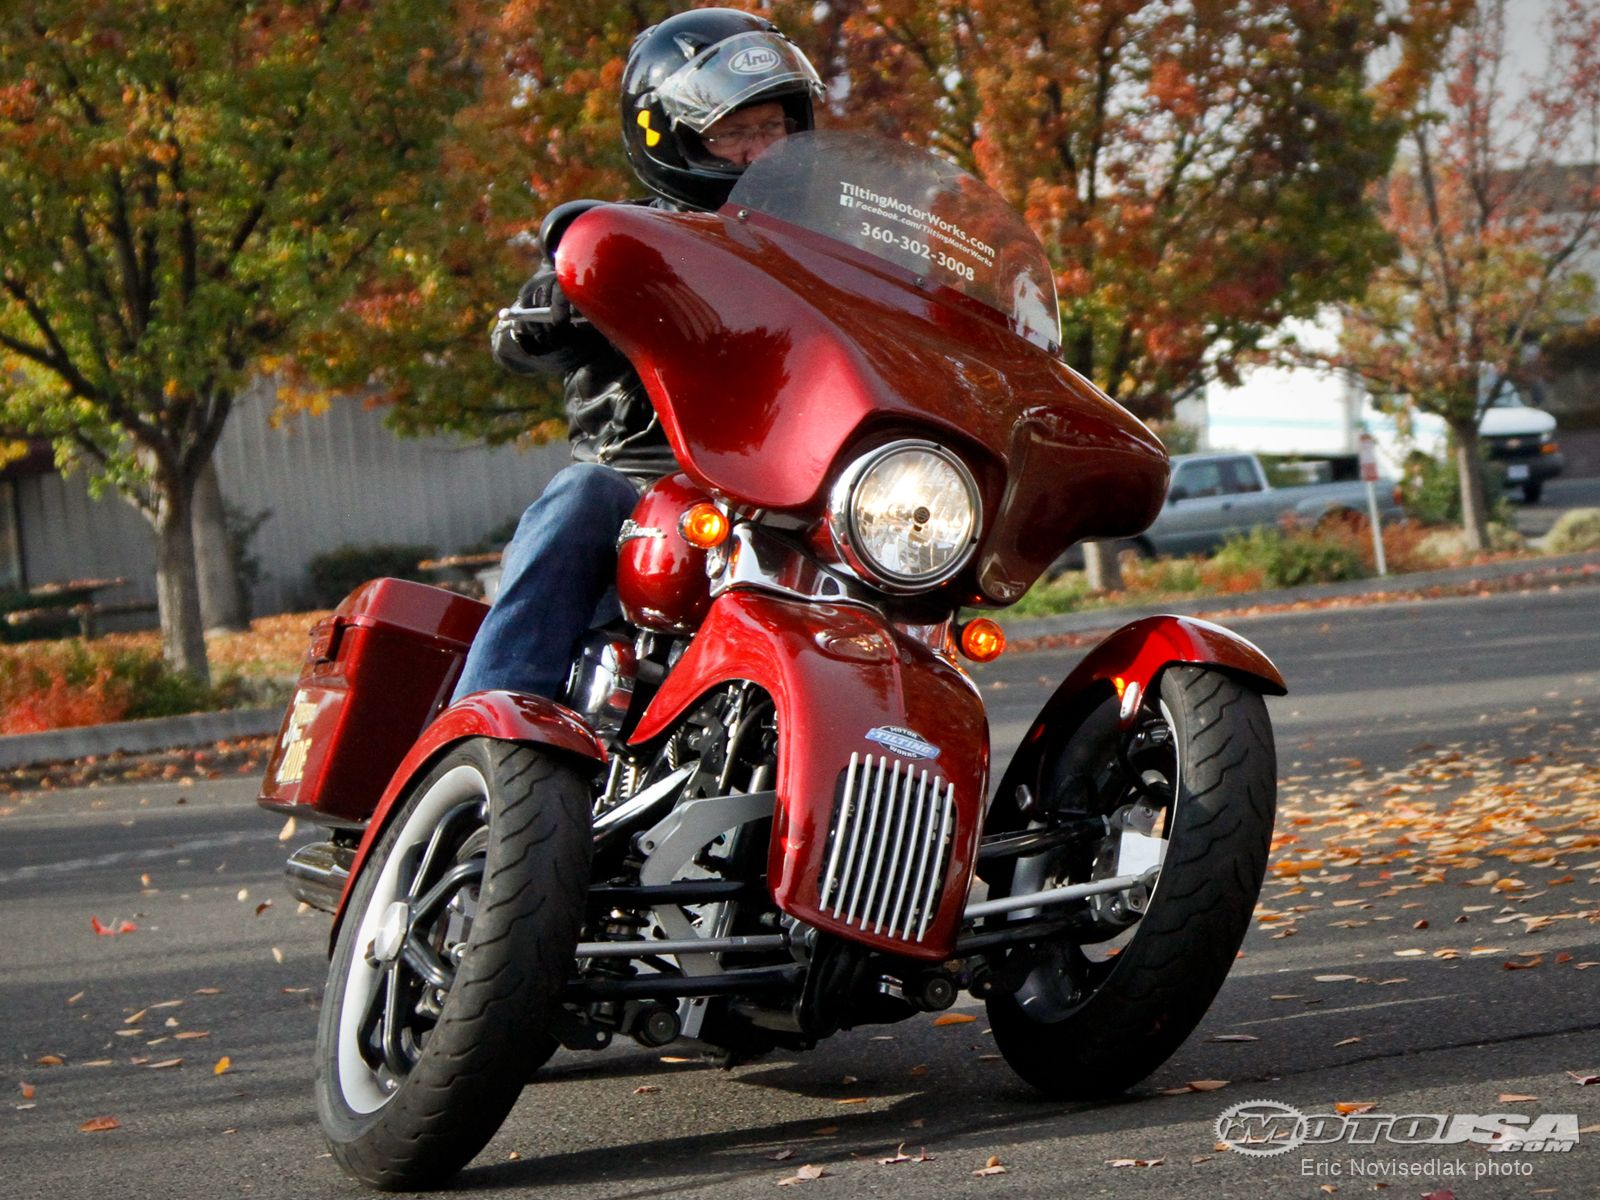 See the three-wheeled conversion kit for Harley-Davidsons in